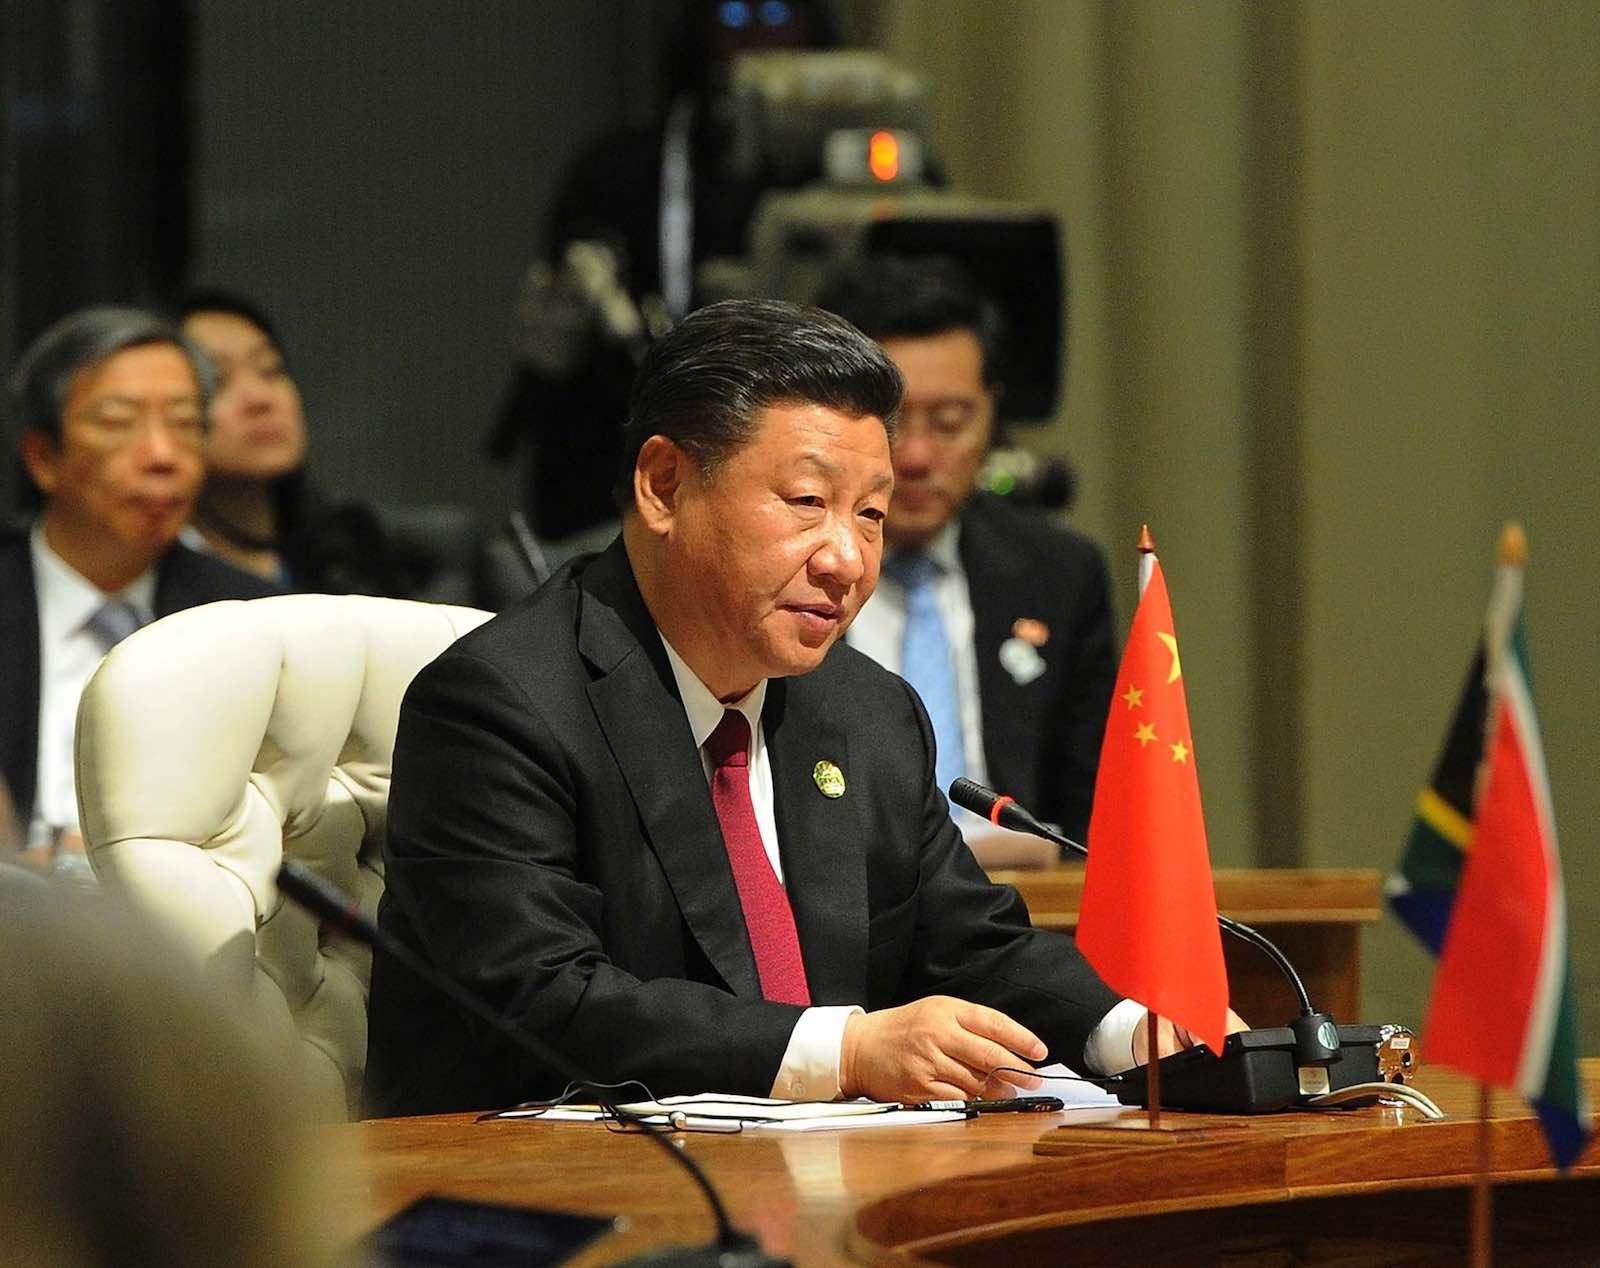 """Xi Jinping has made a call to """"unite all Chinese sons and daughters"""" (Photo: GovernmentZA/Flickr)"""